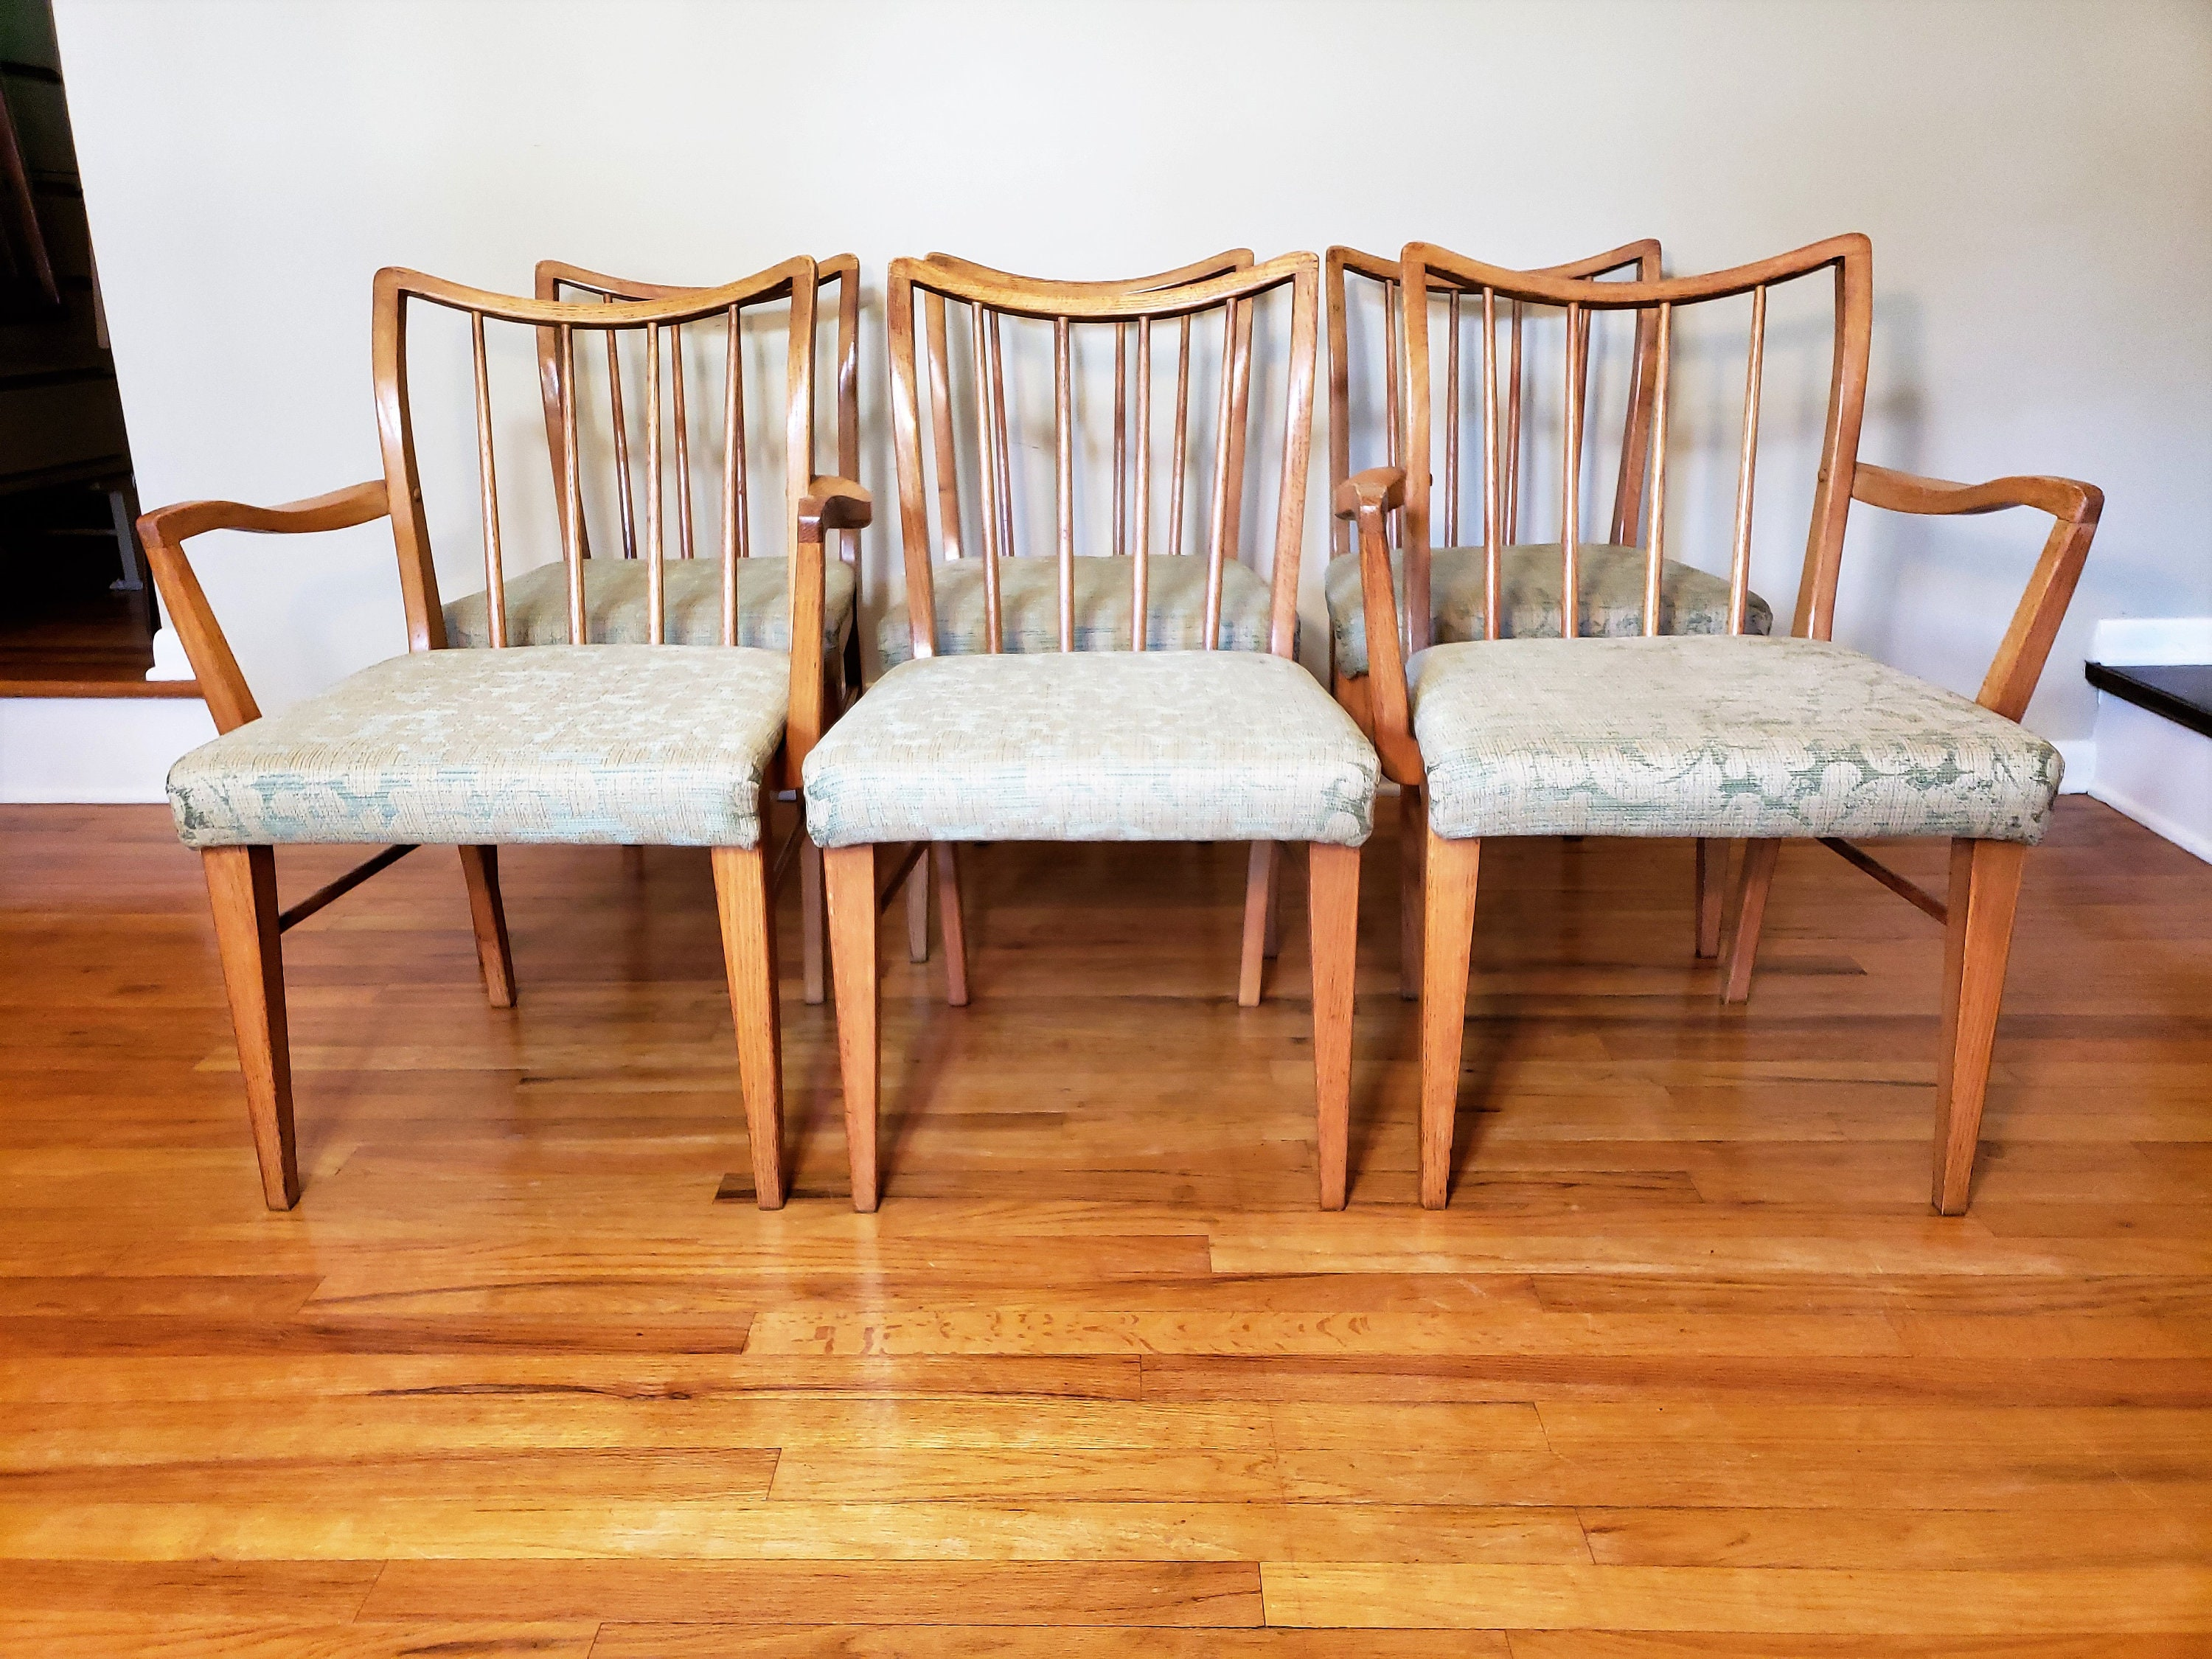 Astounding Mid Century Danish Modern Set Of Six Oak Dining Chairs Caraccident5 Cool Chair Designs And Ideas Caraccident5Info